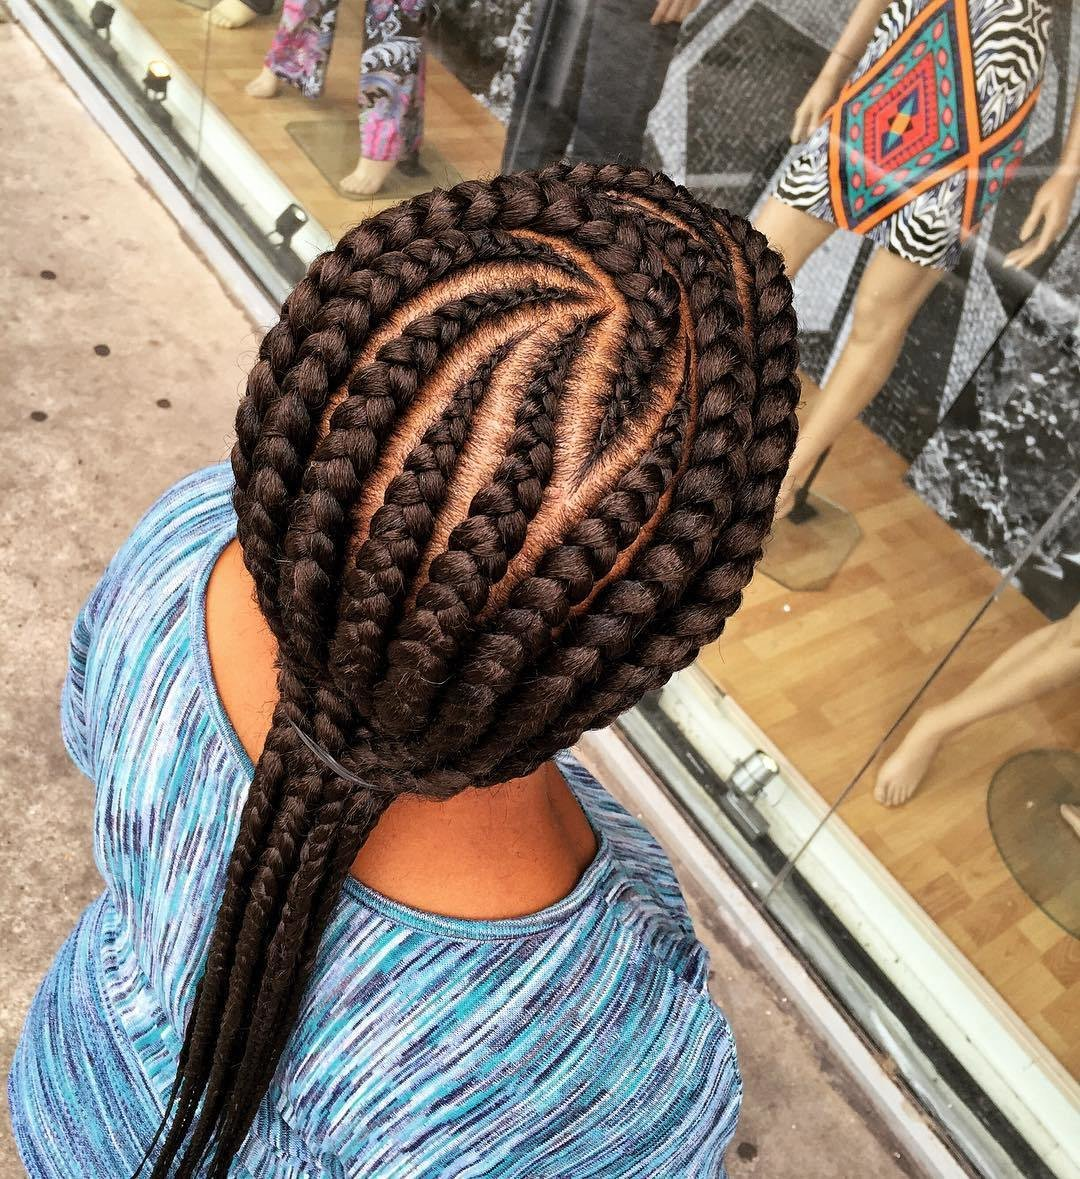 New African Braids 15 Stunning African Hair Braiding Styles And Pictures Ideas With Pictures Original 1024 x 768